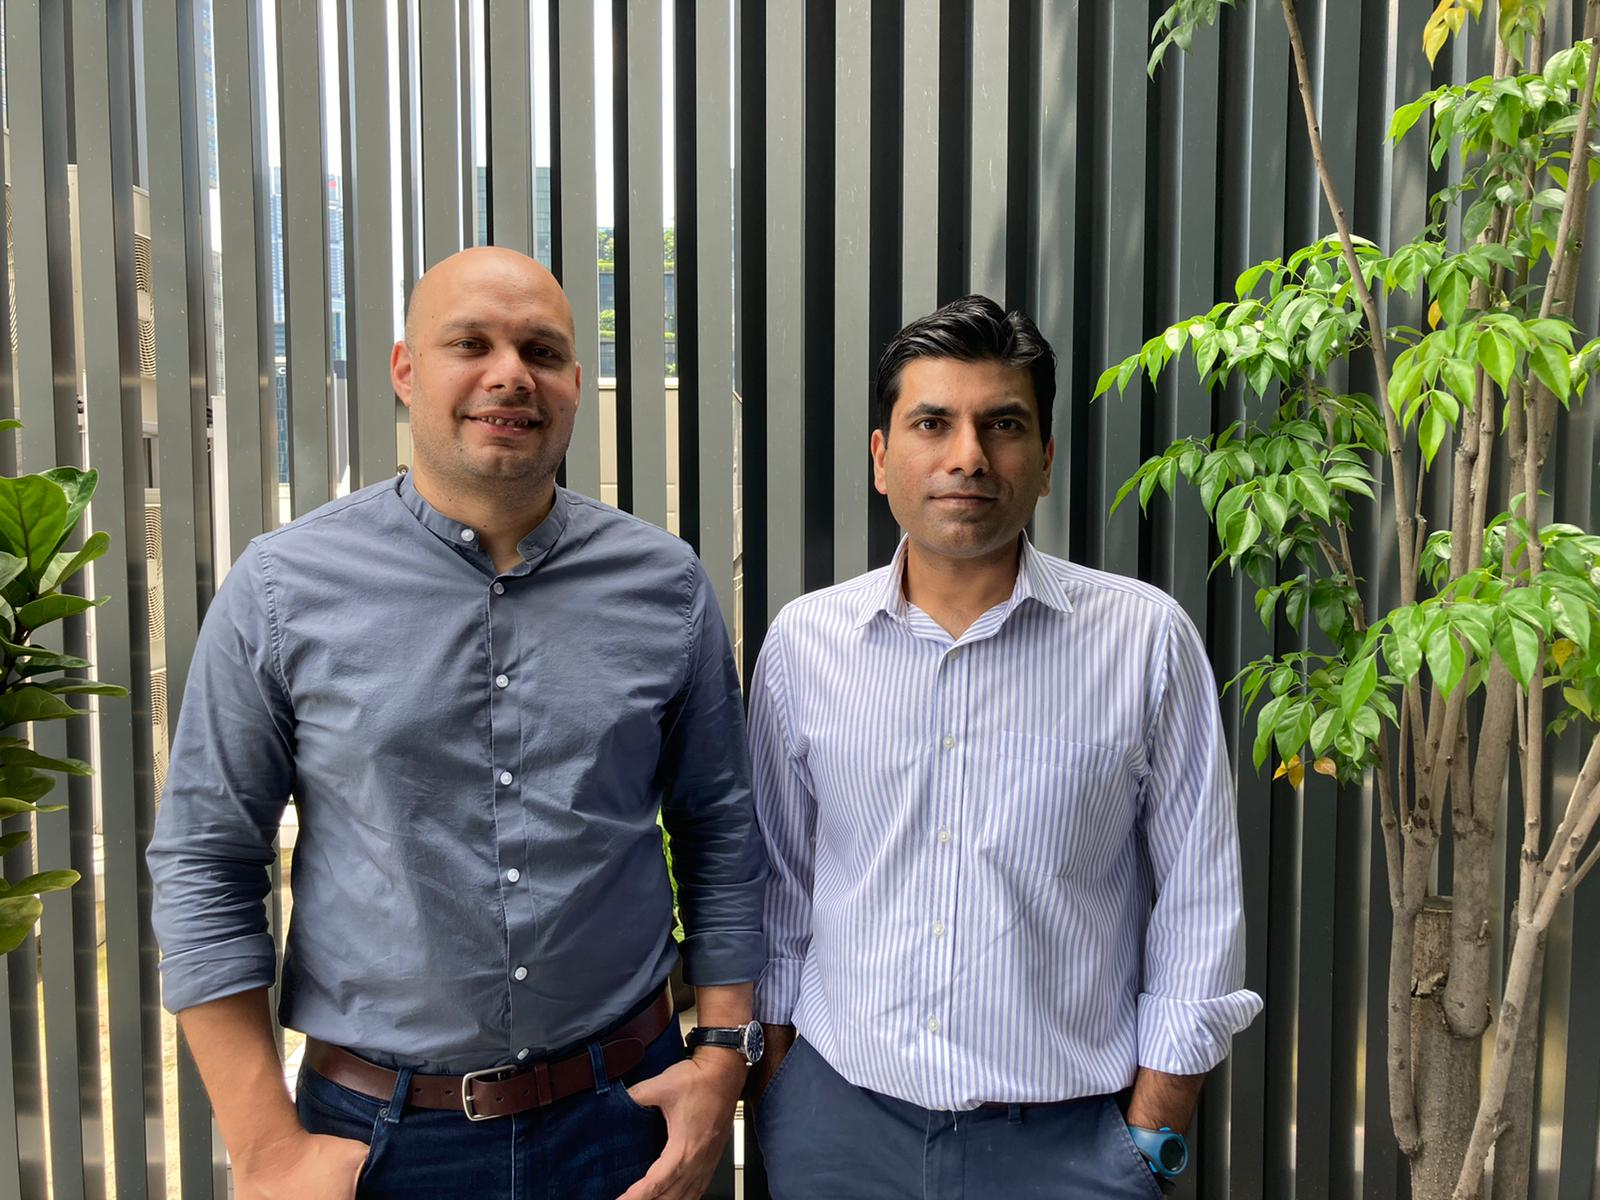 Fewcents Co-Founders Dushyant Khare (left) and Abhishek Dadoo (right). Photo courtesy: Fewcents